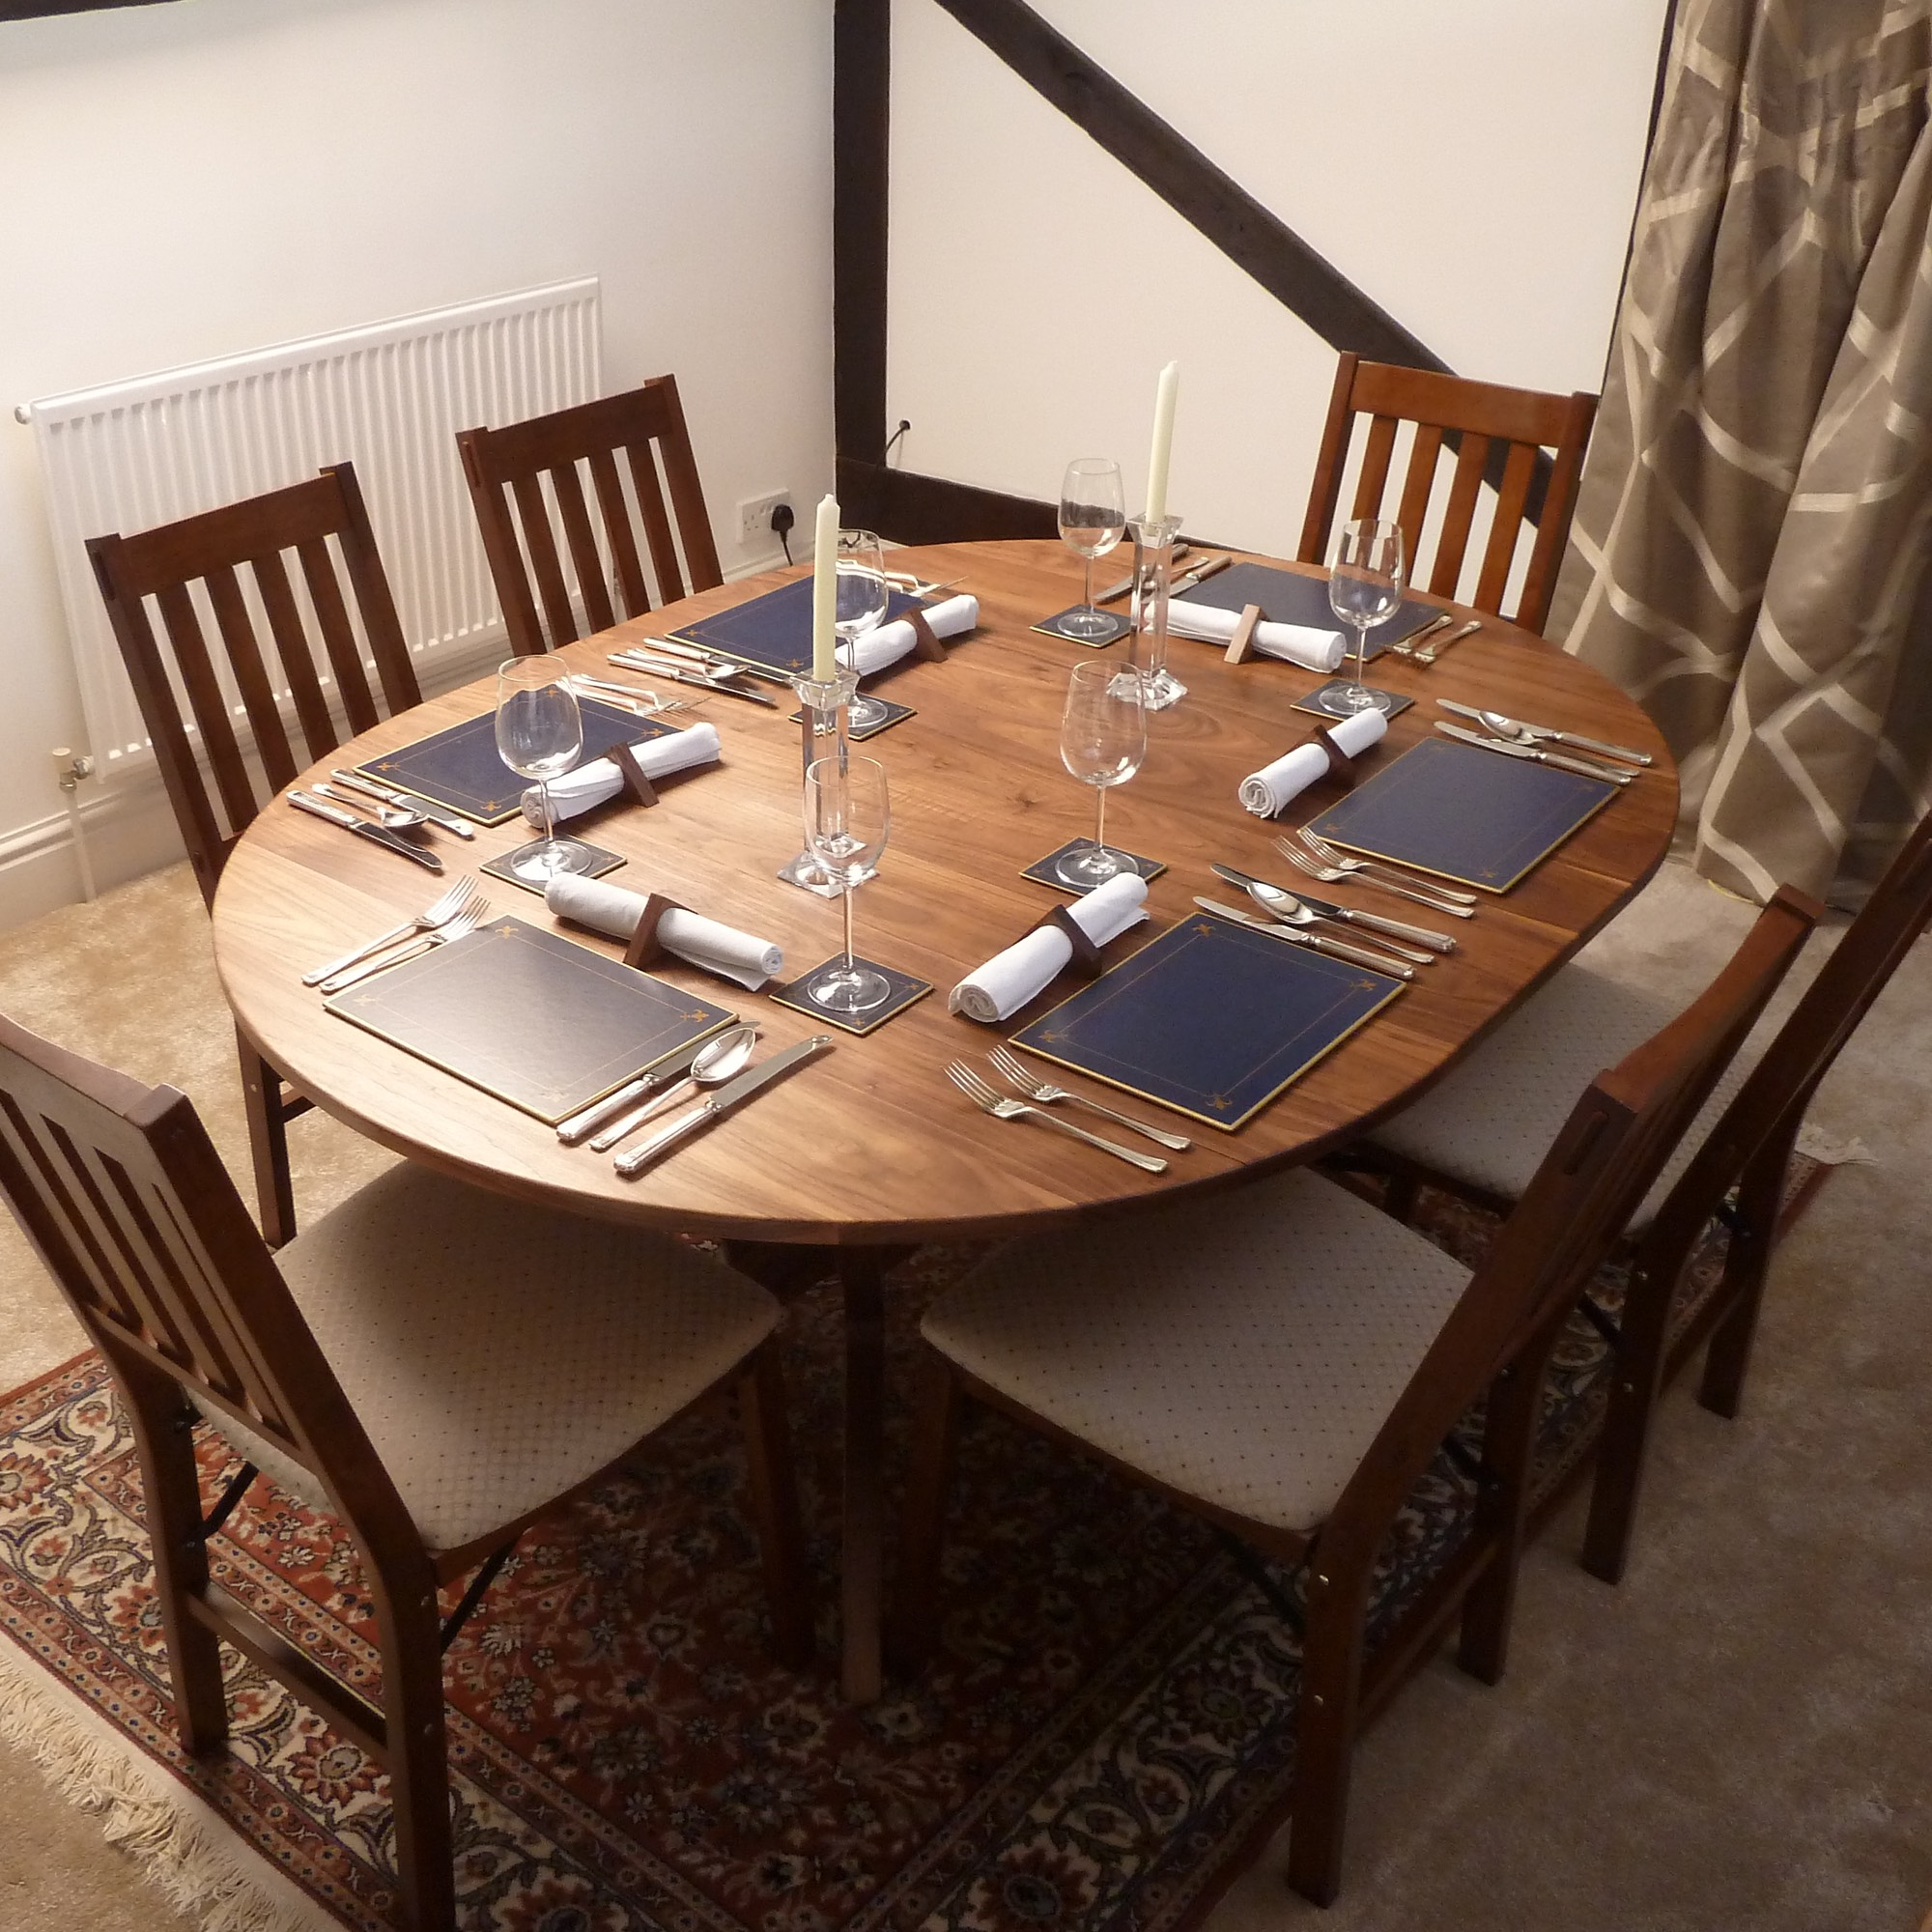 Extending Dining Table set for six diners